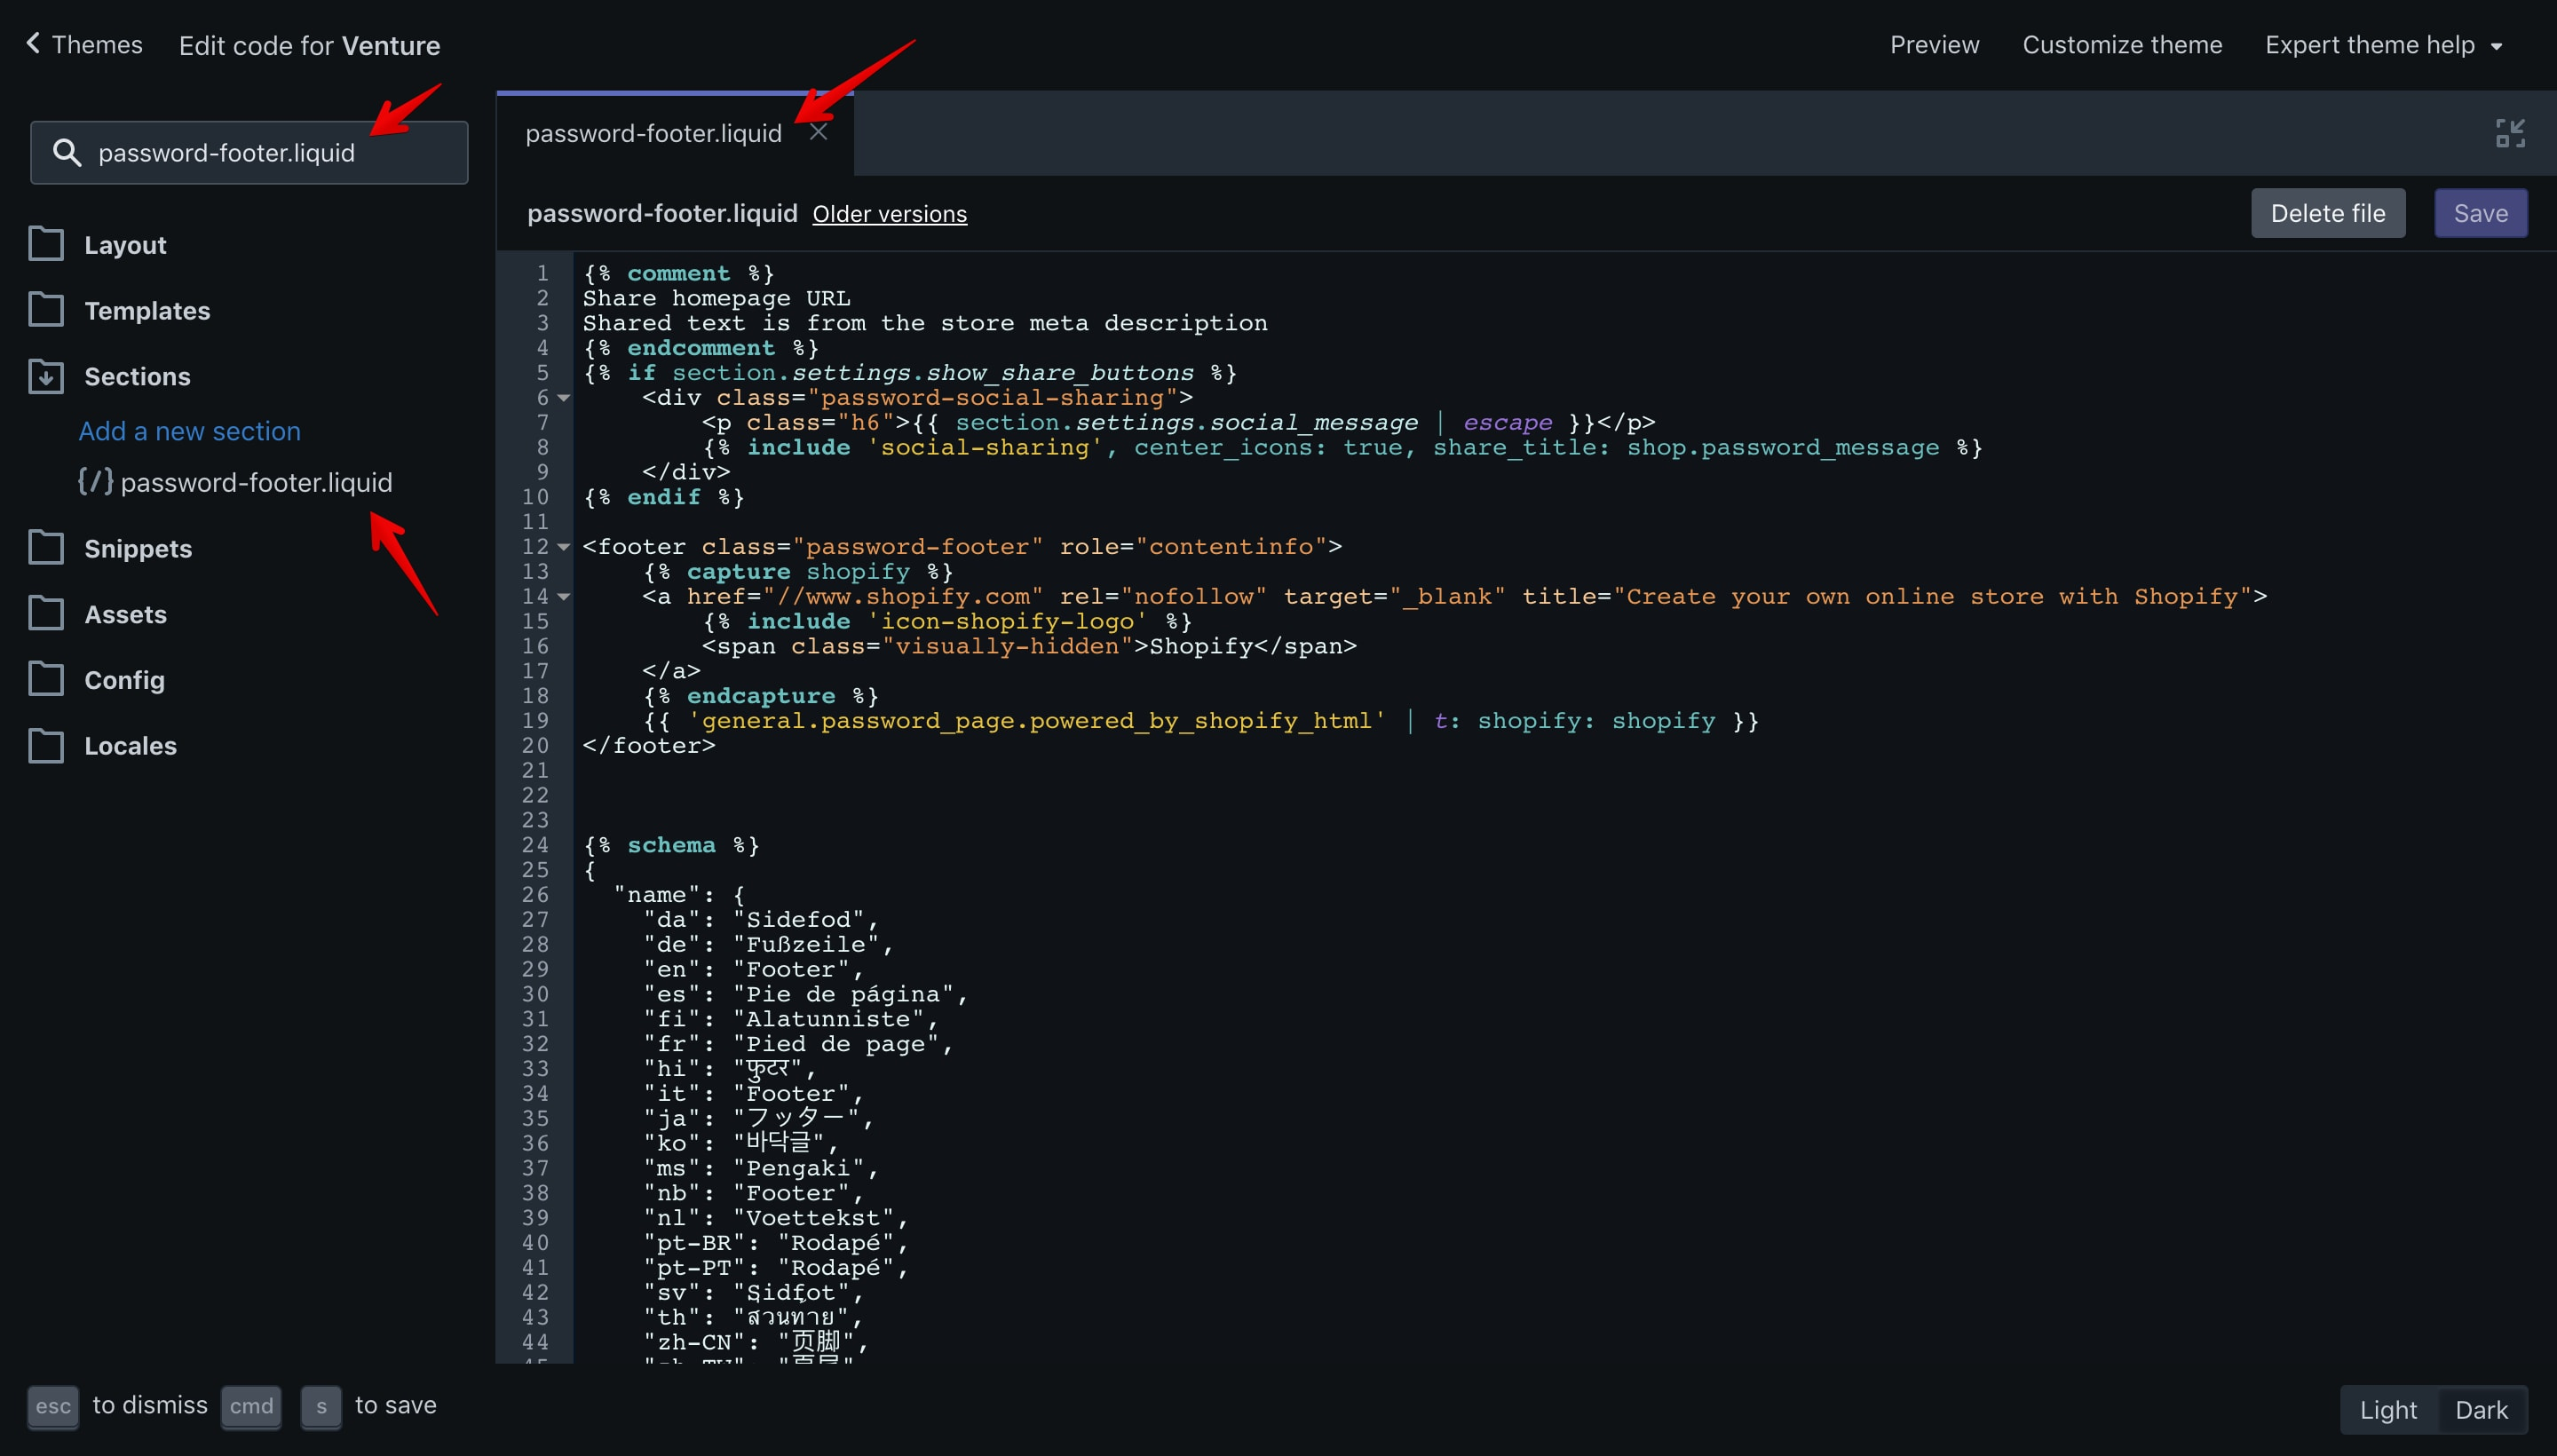 """Venture theme """"password-footer.liquid"""" file opened in the code editor."""